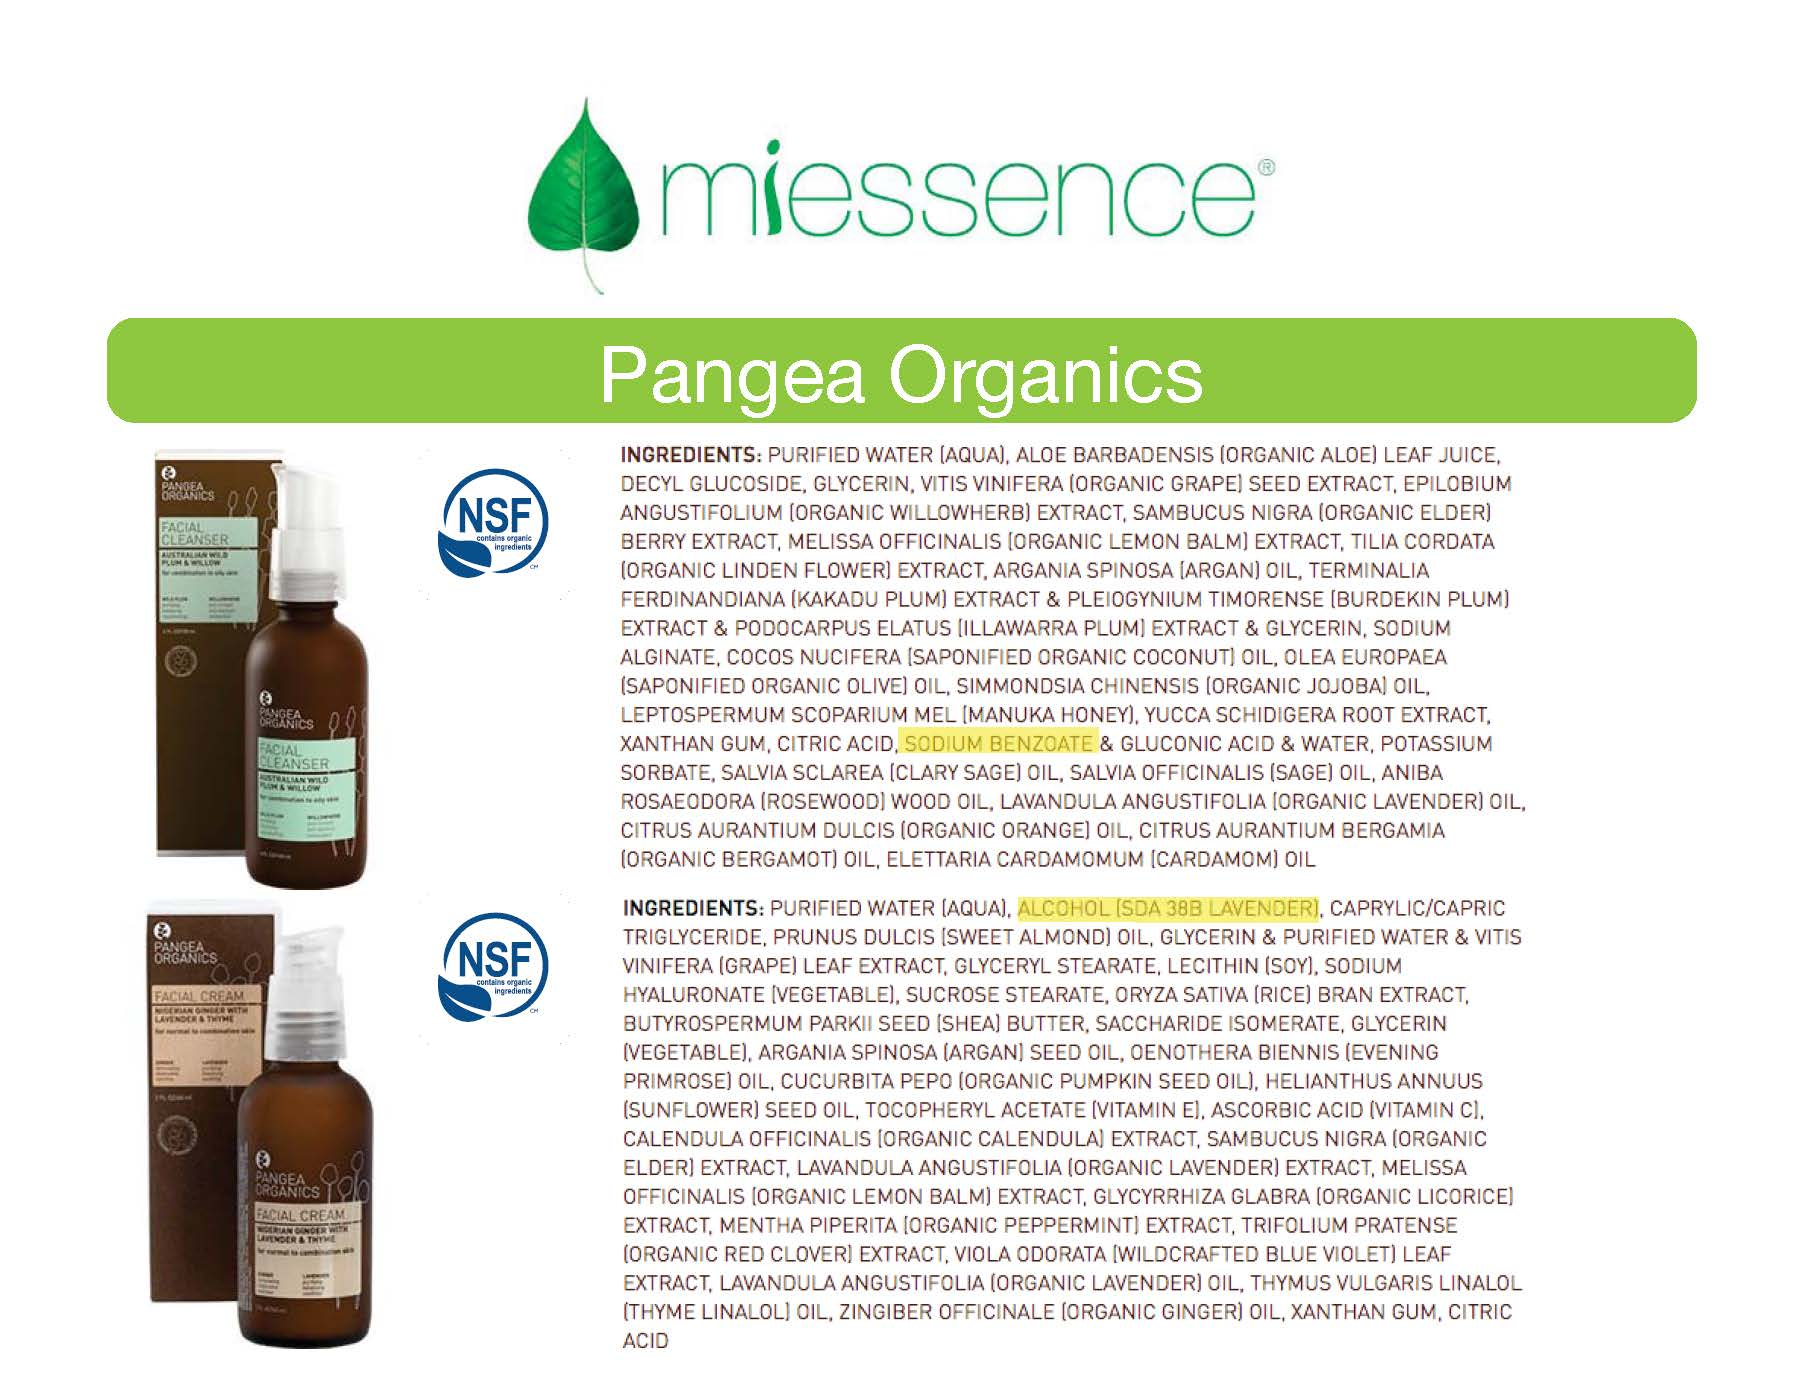 is pangea organics really organic